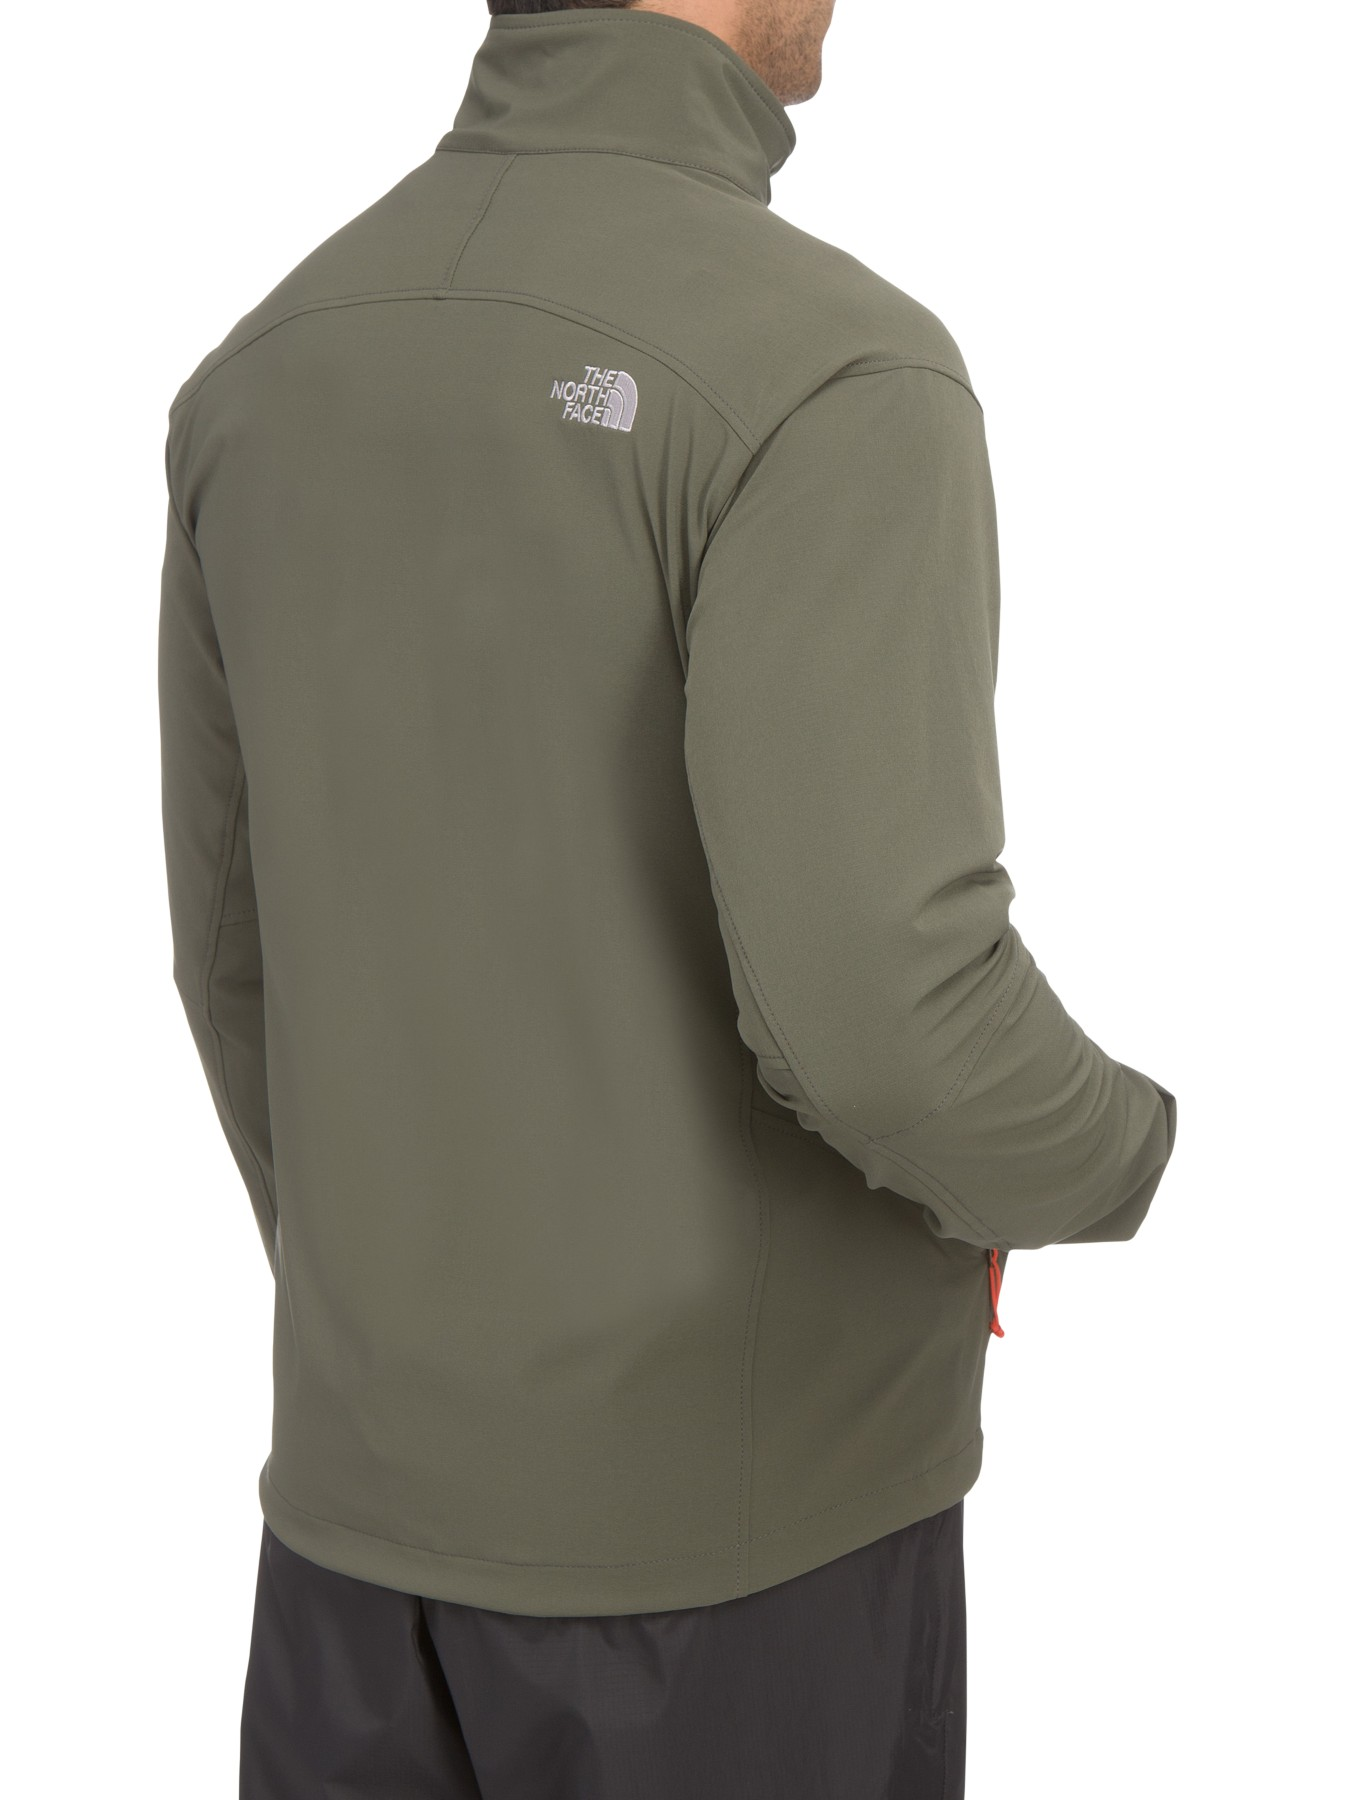 The North Face Ceresio Jacket in Grey (Grey) for Men